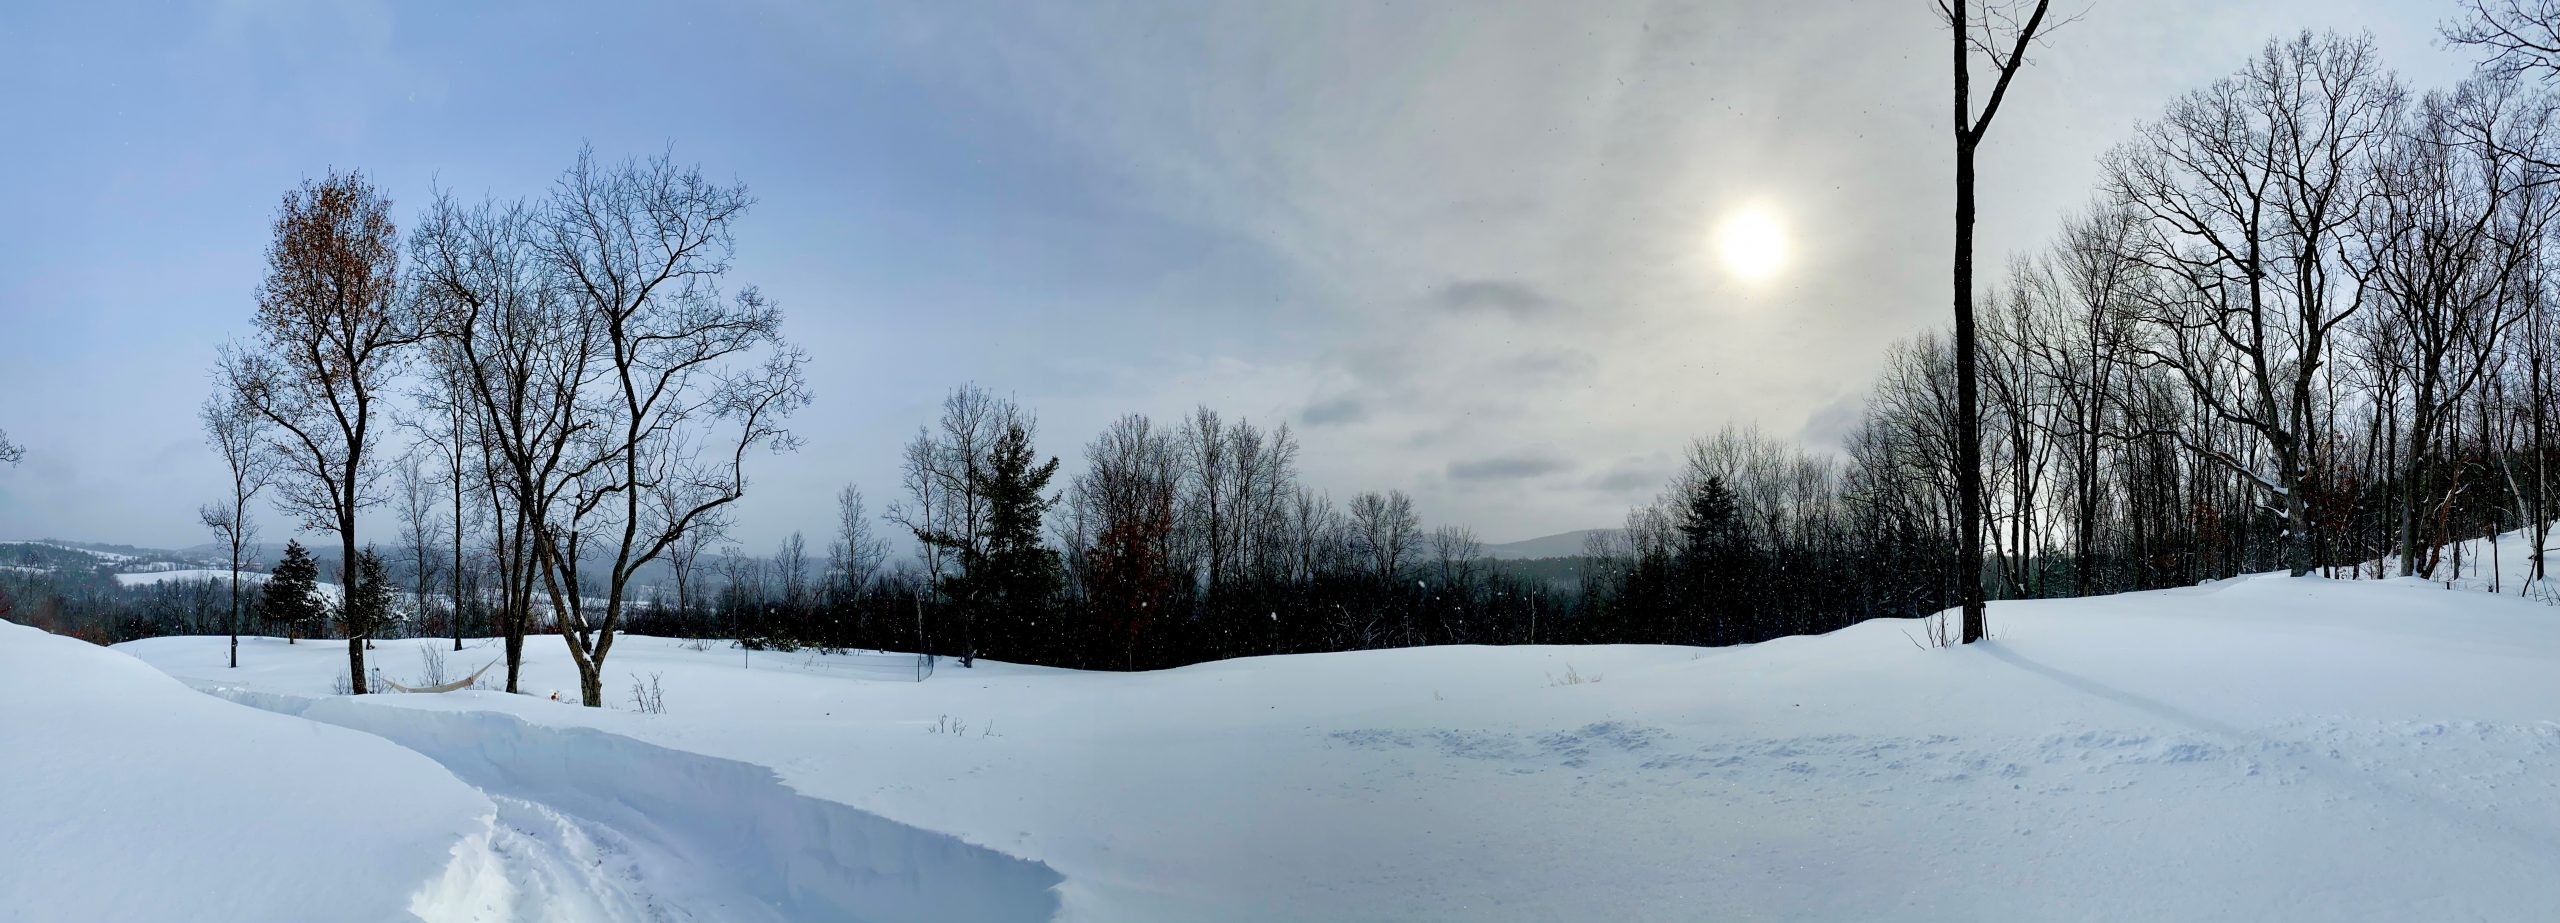 Panoramic image of snow covering forests, hills, and mountains.